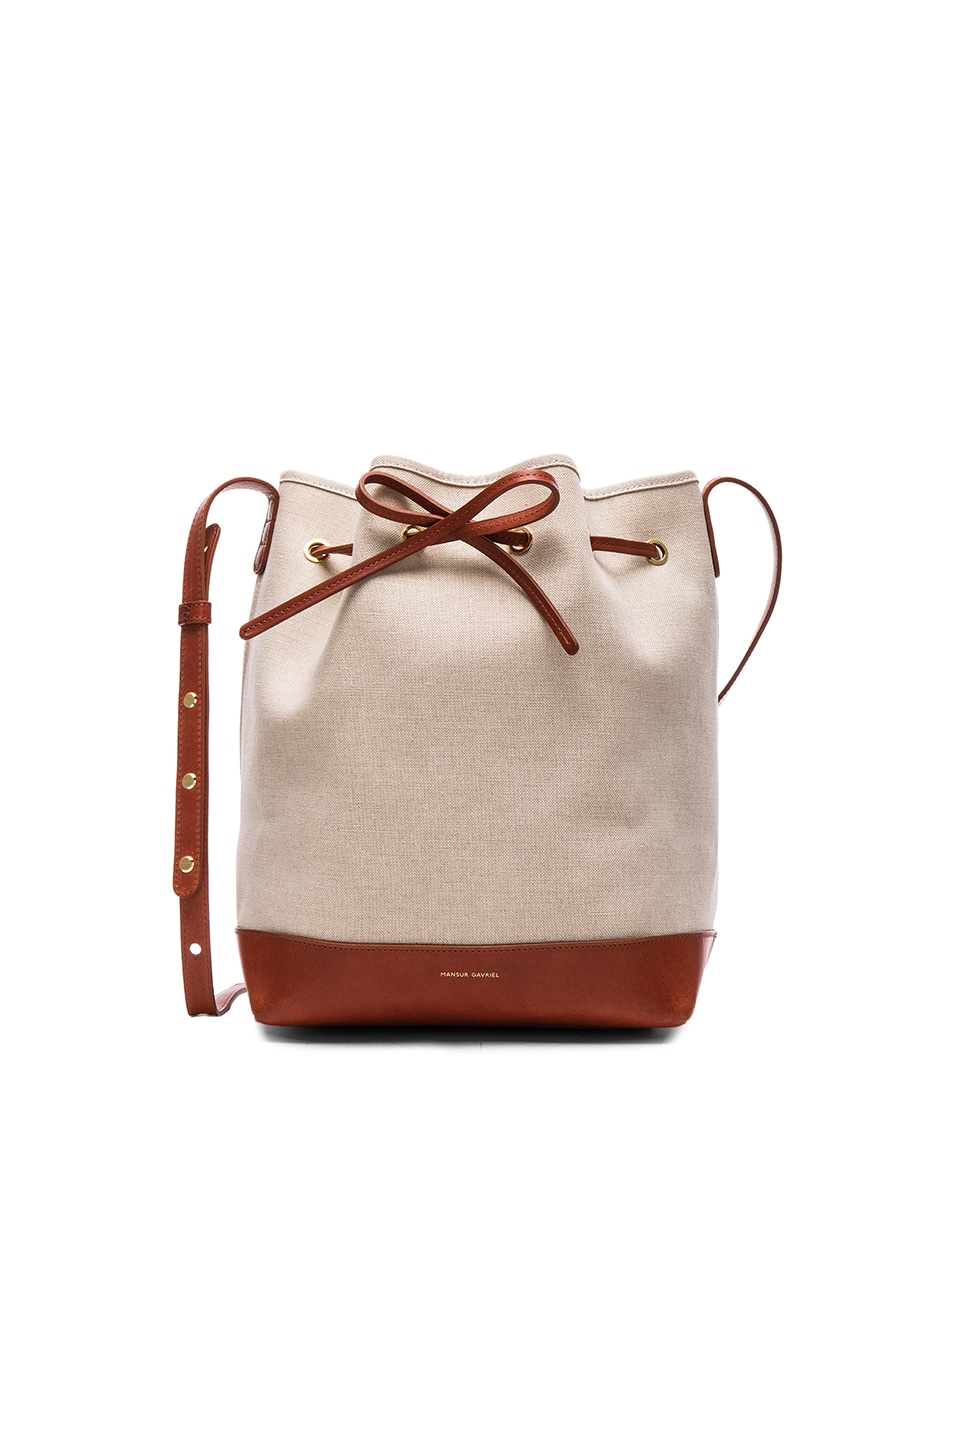 Image 1 Of Mansur Gavriel Canvas Bucket Bag In Creme Brandy